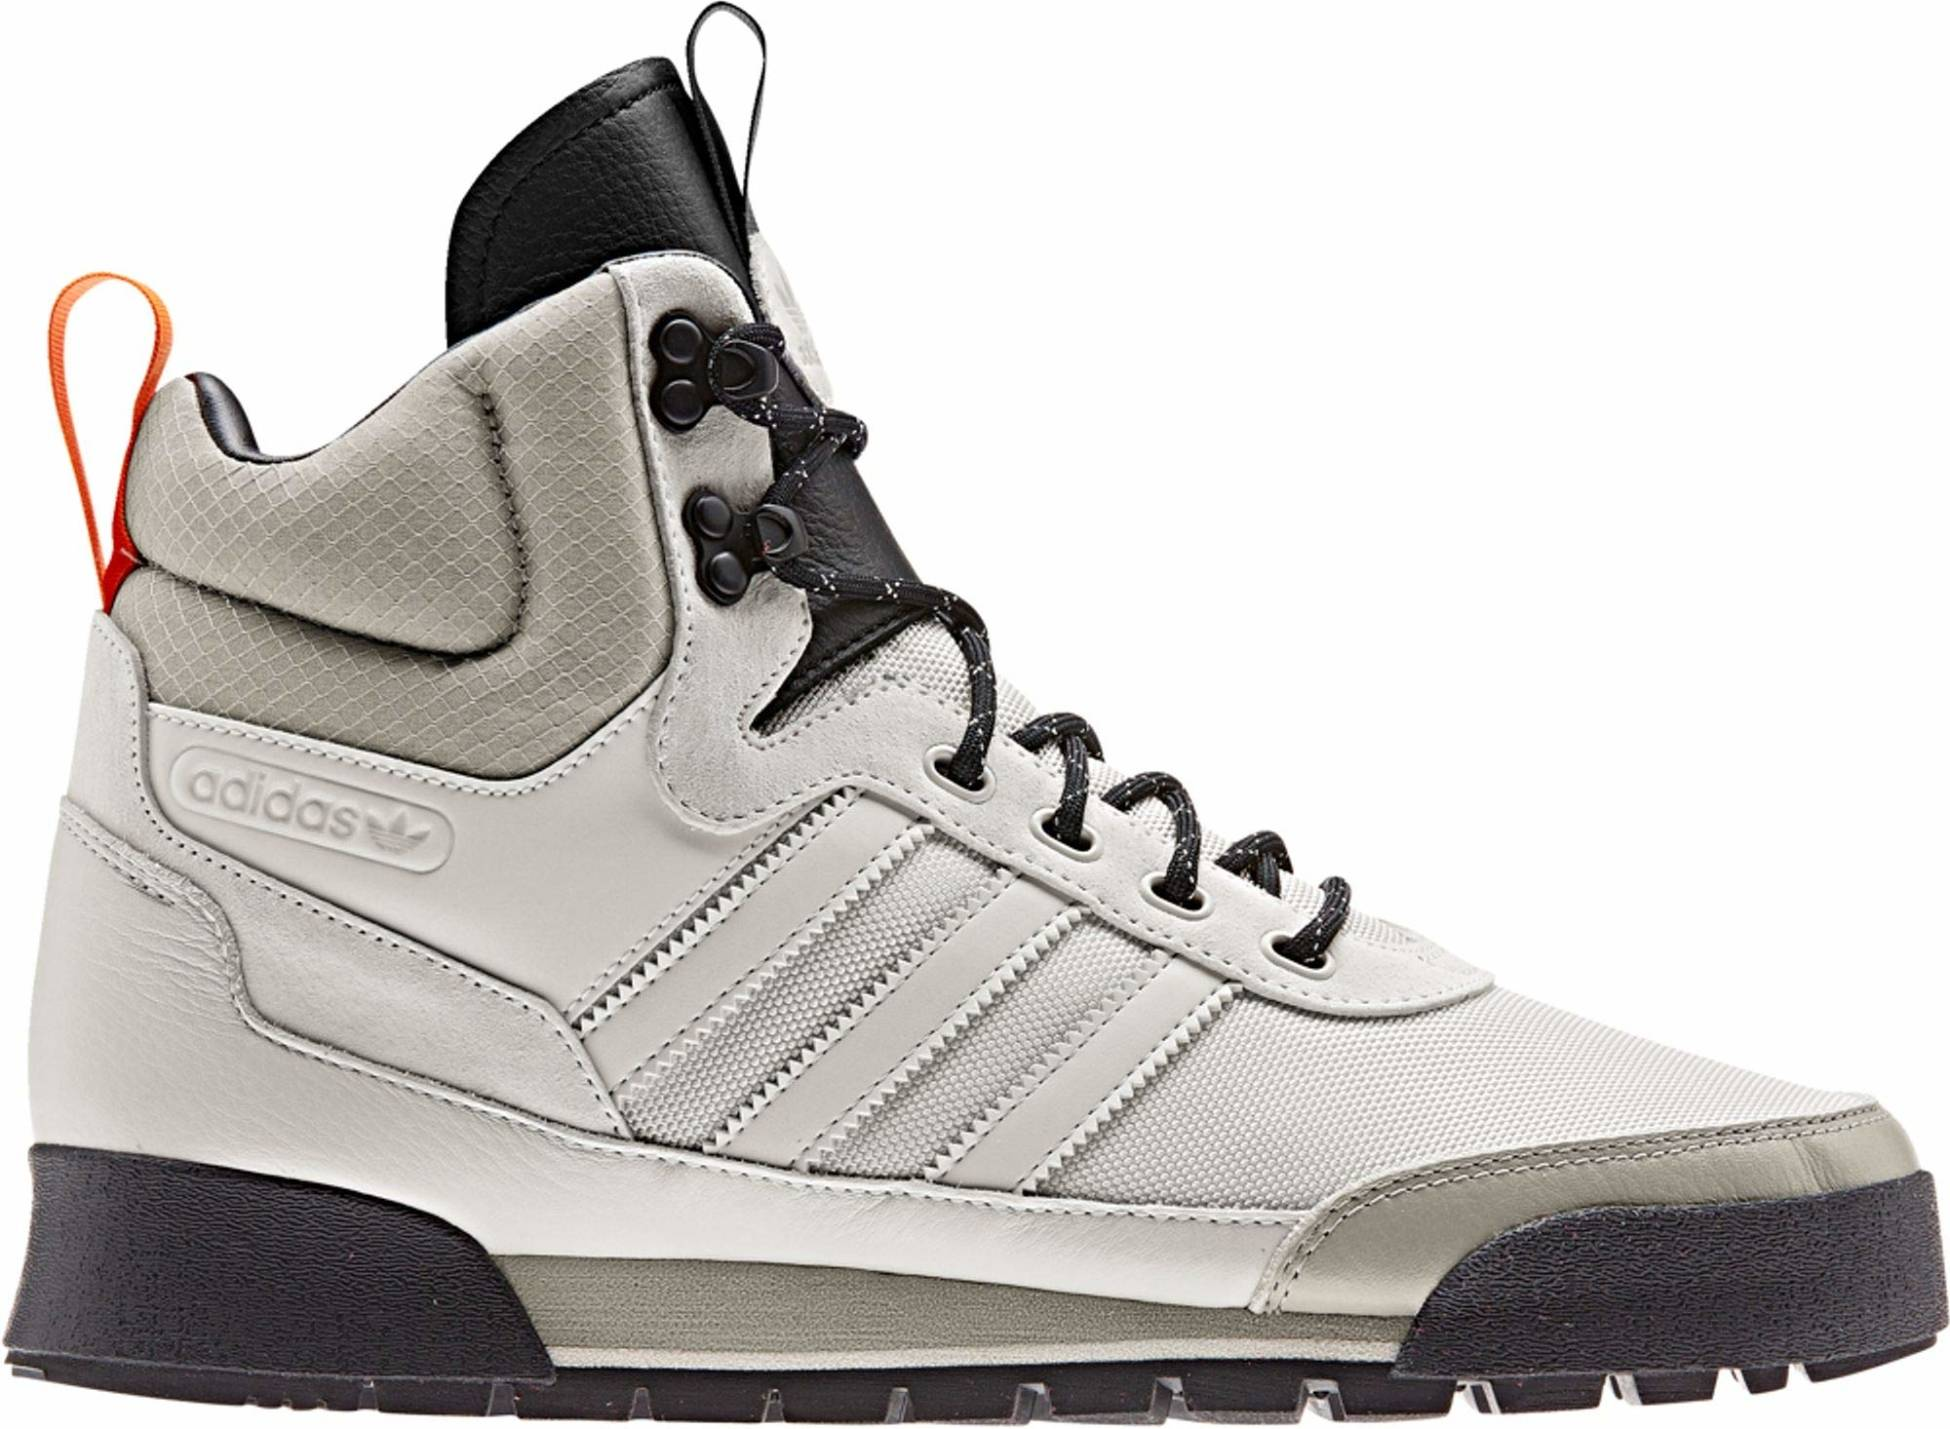 Save 60% on Adidas High Top Sneakers